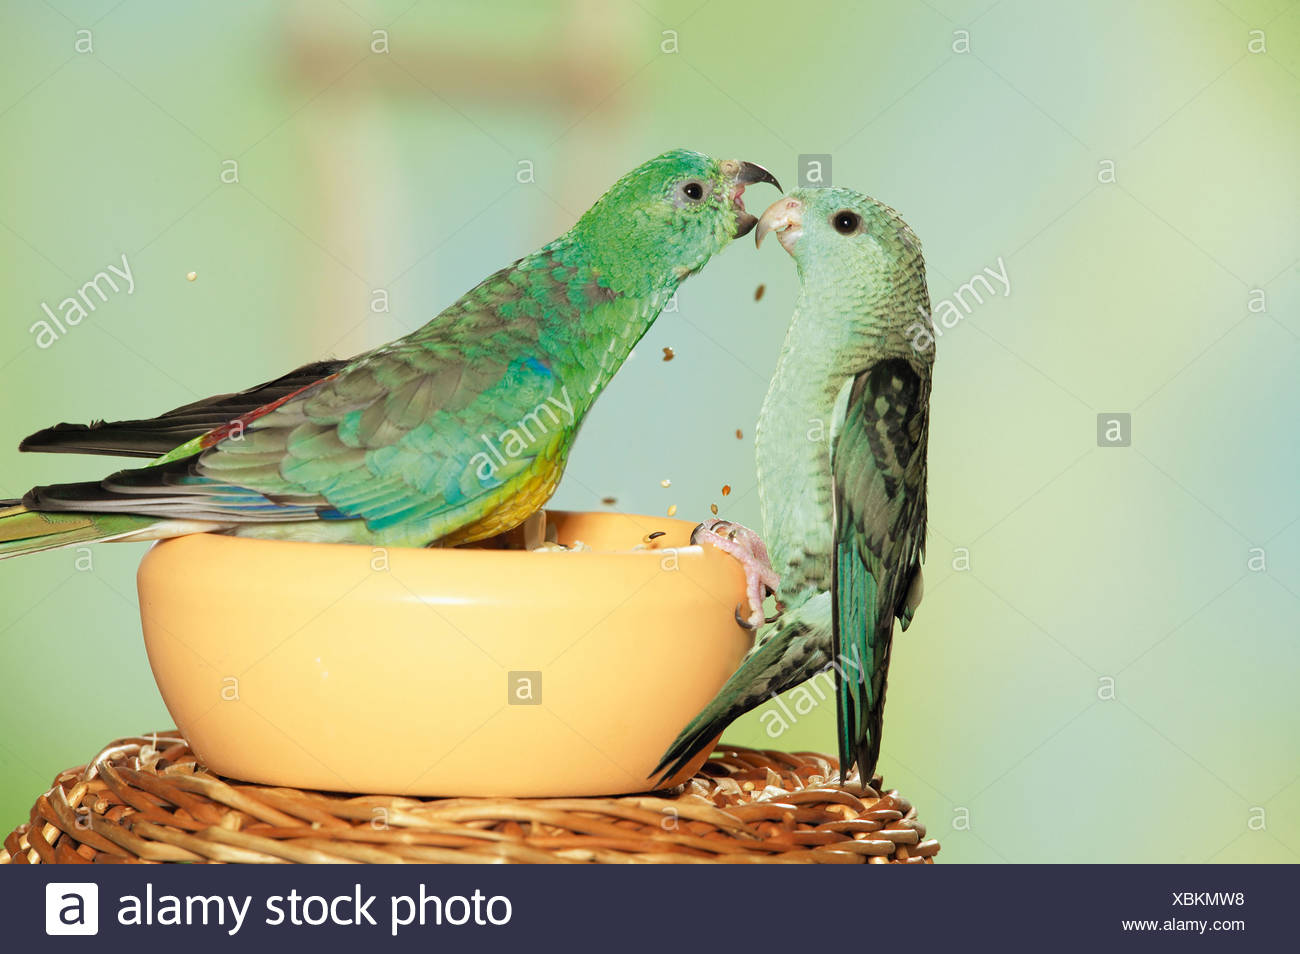 Red Rumped Parrots Stock Photos & Red Rumped Parrots Stock